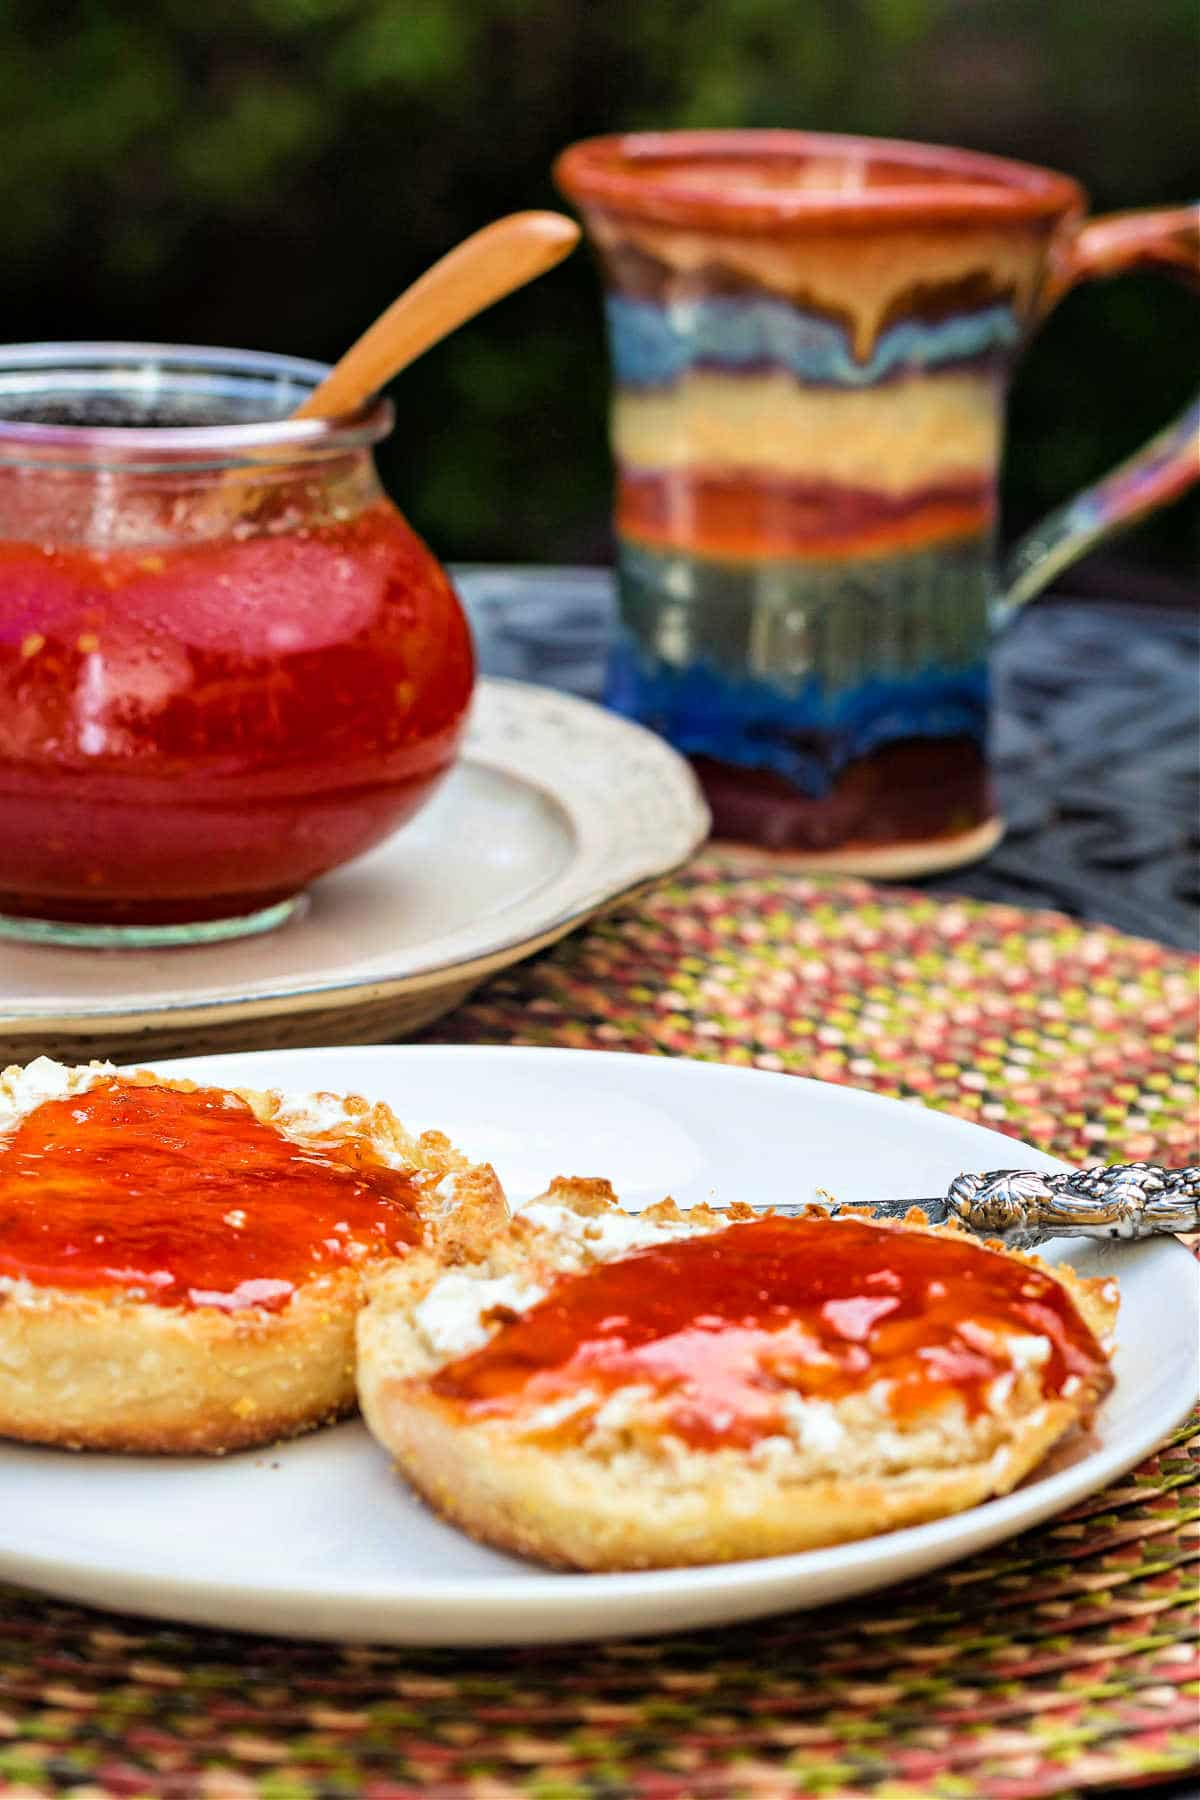 A white plate with two pieces of English muffin on it spread with jam. The jar of jam is in the background along with a multi-colored mug.